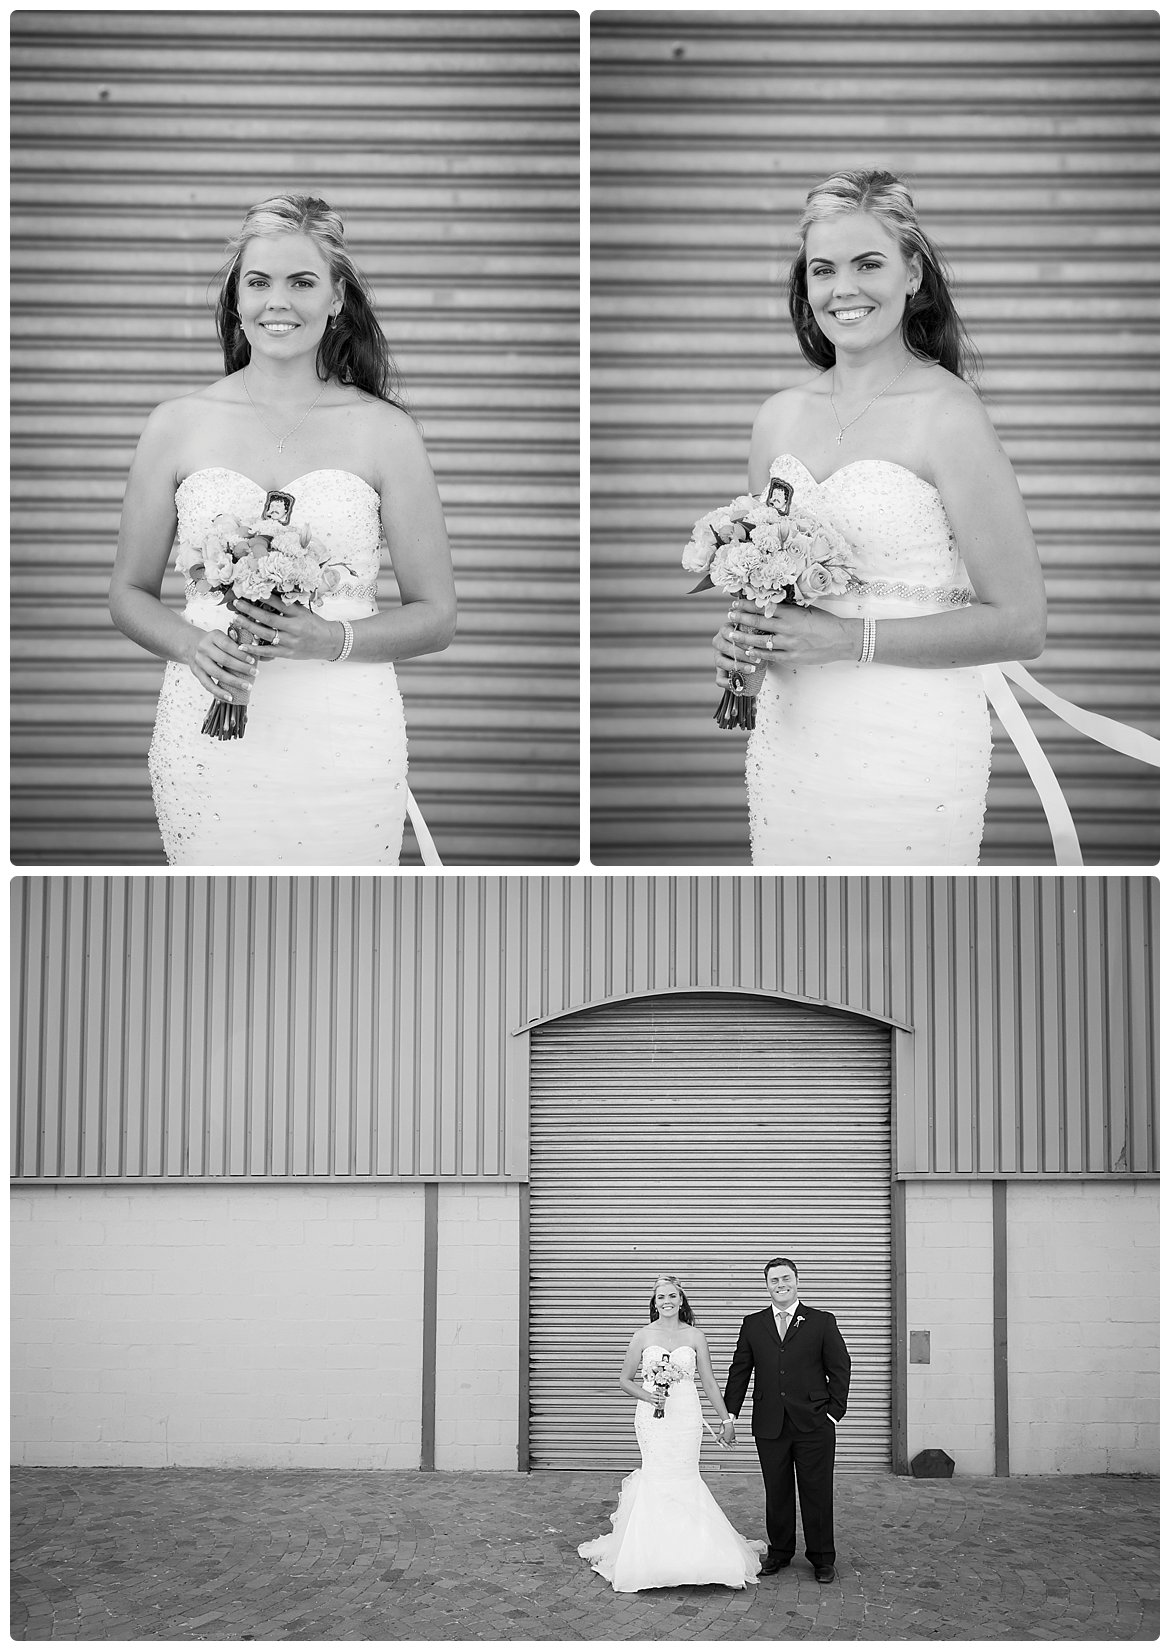 cape-town-wedding-photographer-delvera-joanne-markland-zack-heidi-0025